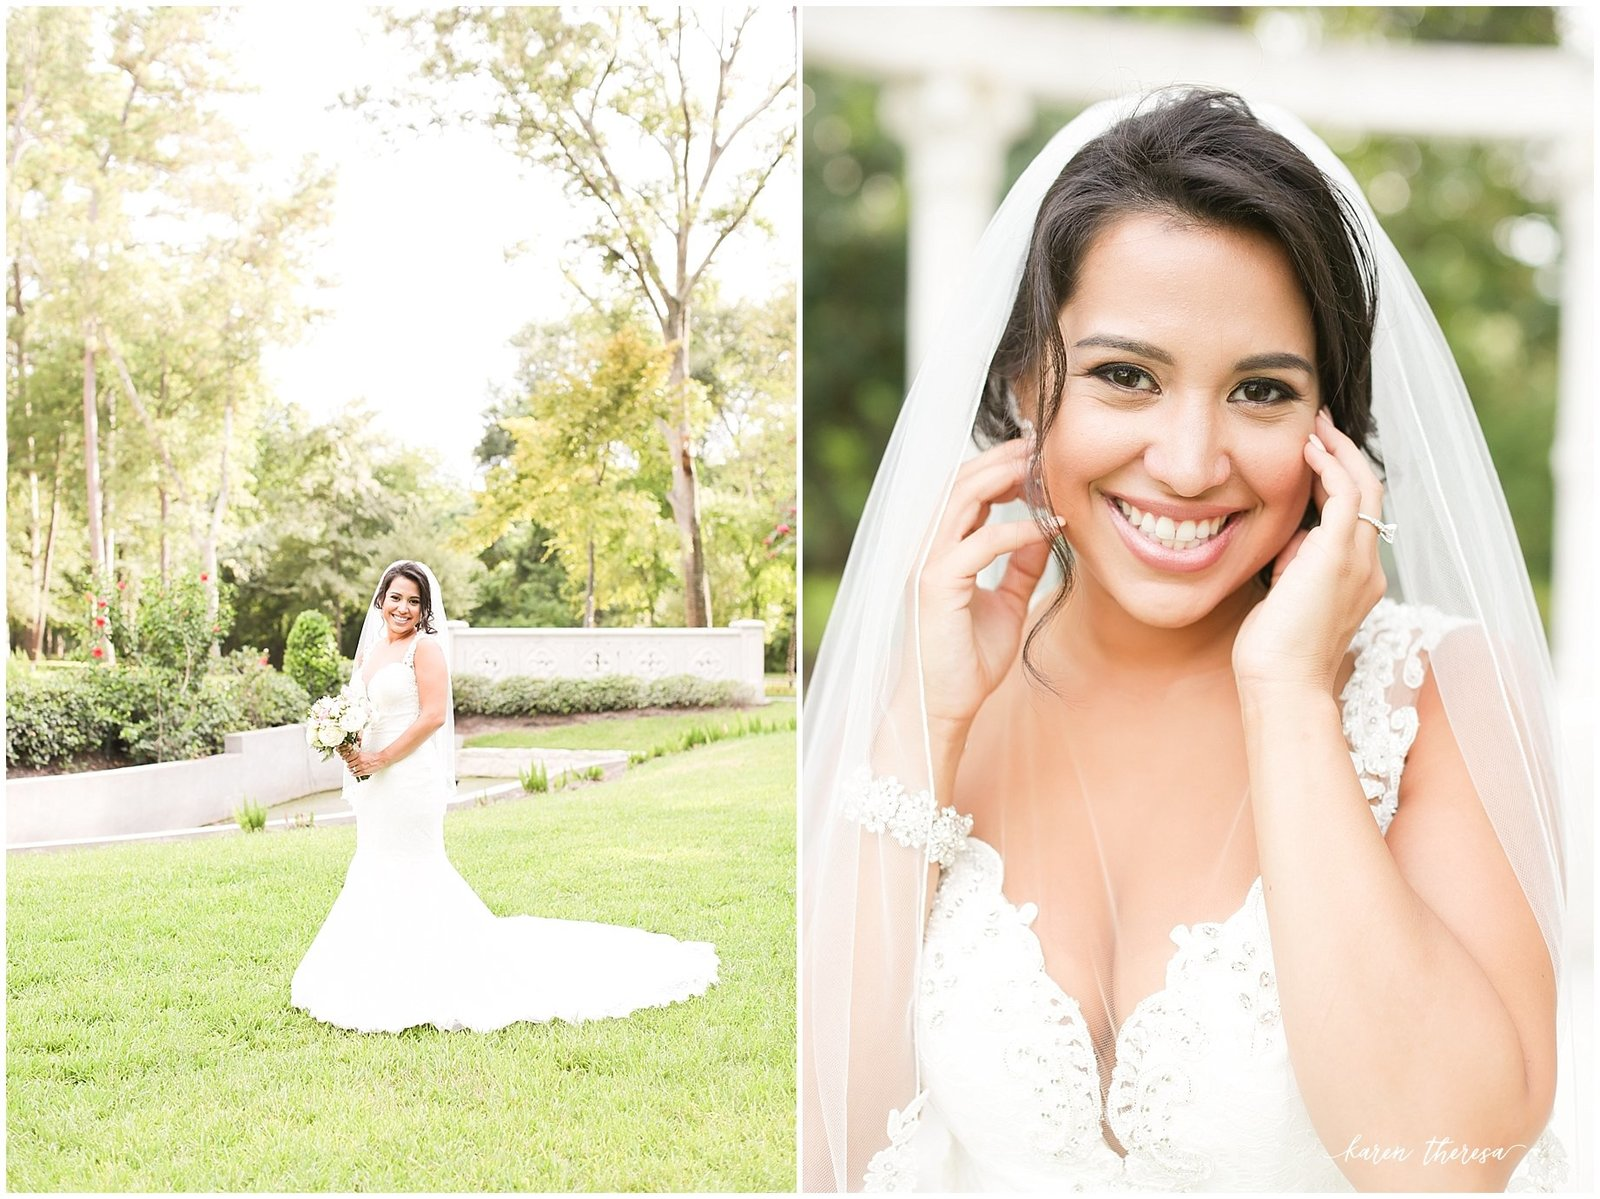 Chateau Cocomar-beautiful bridal photography-karen theresa photography_0752